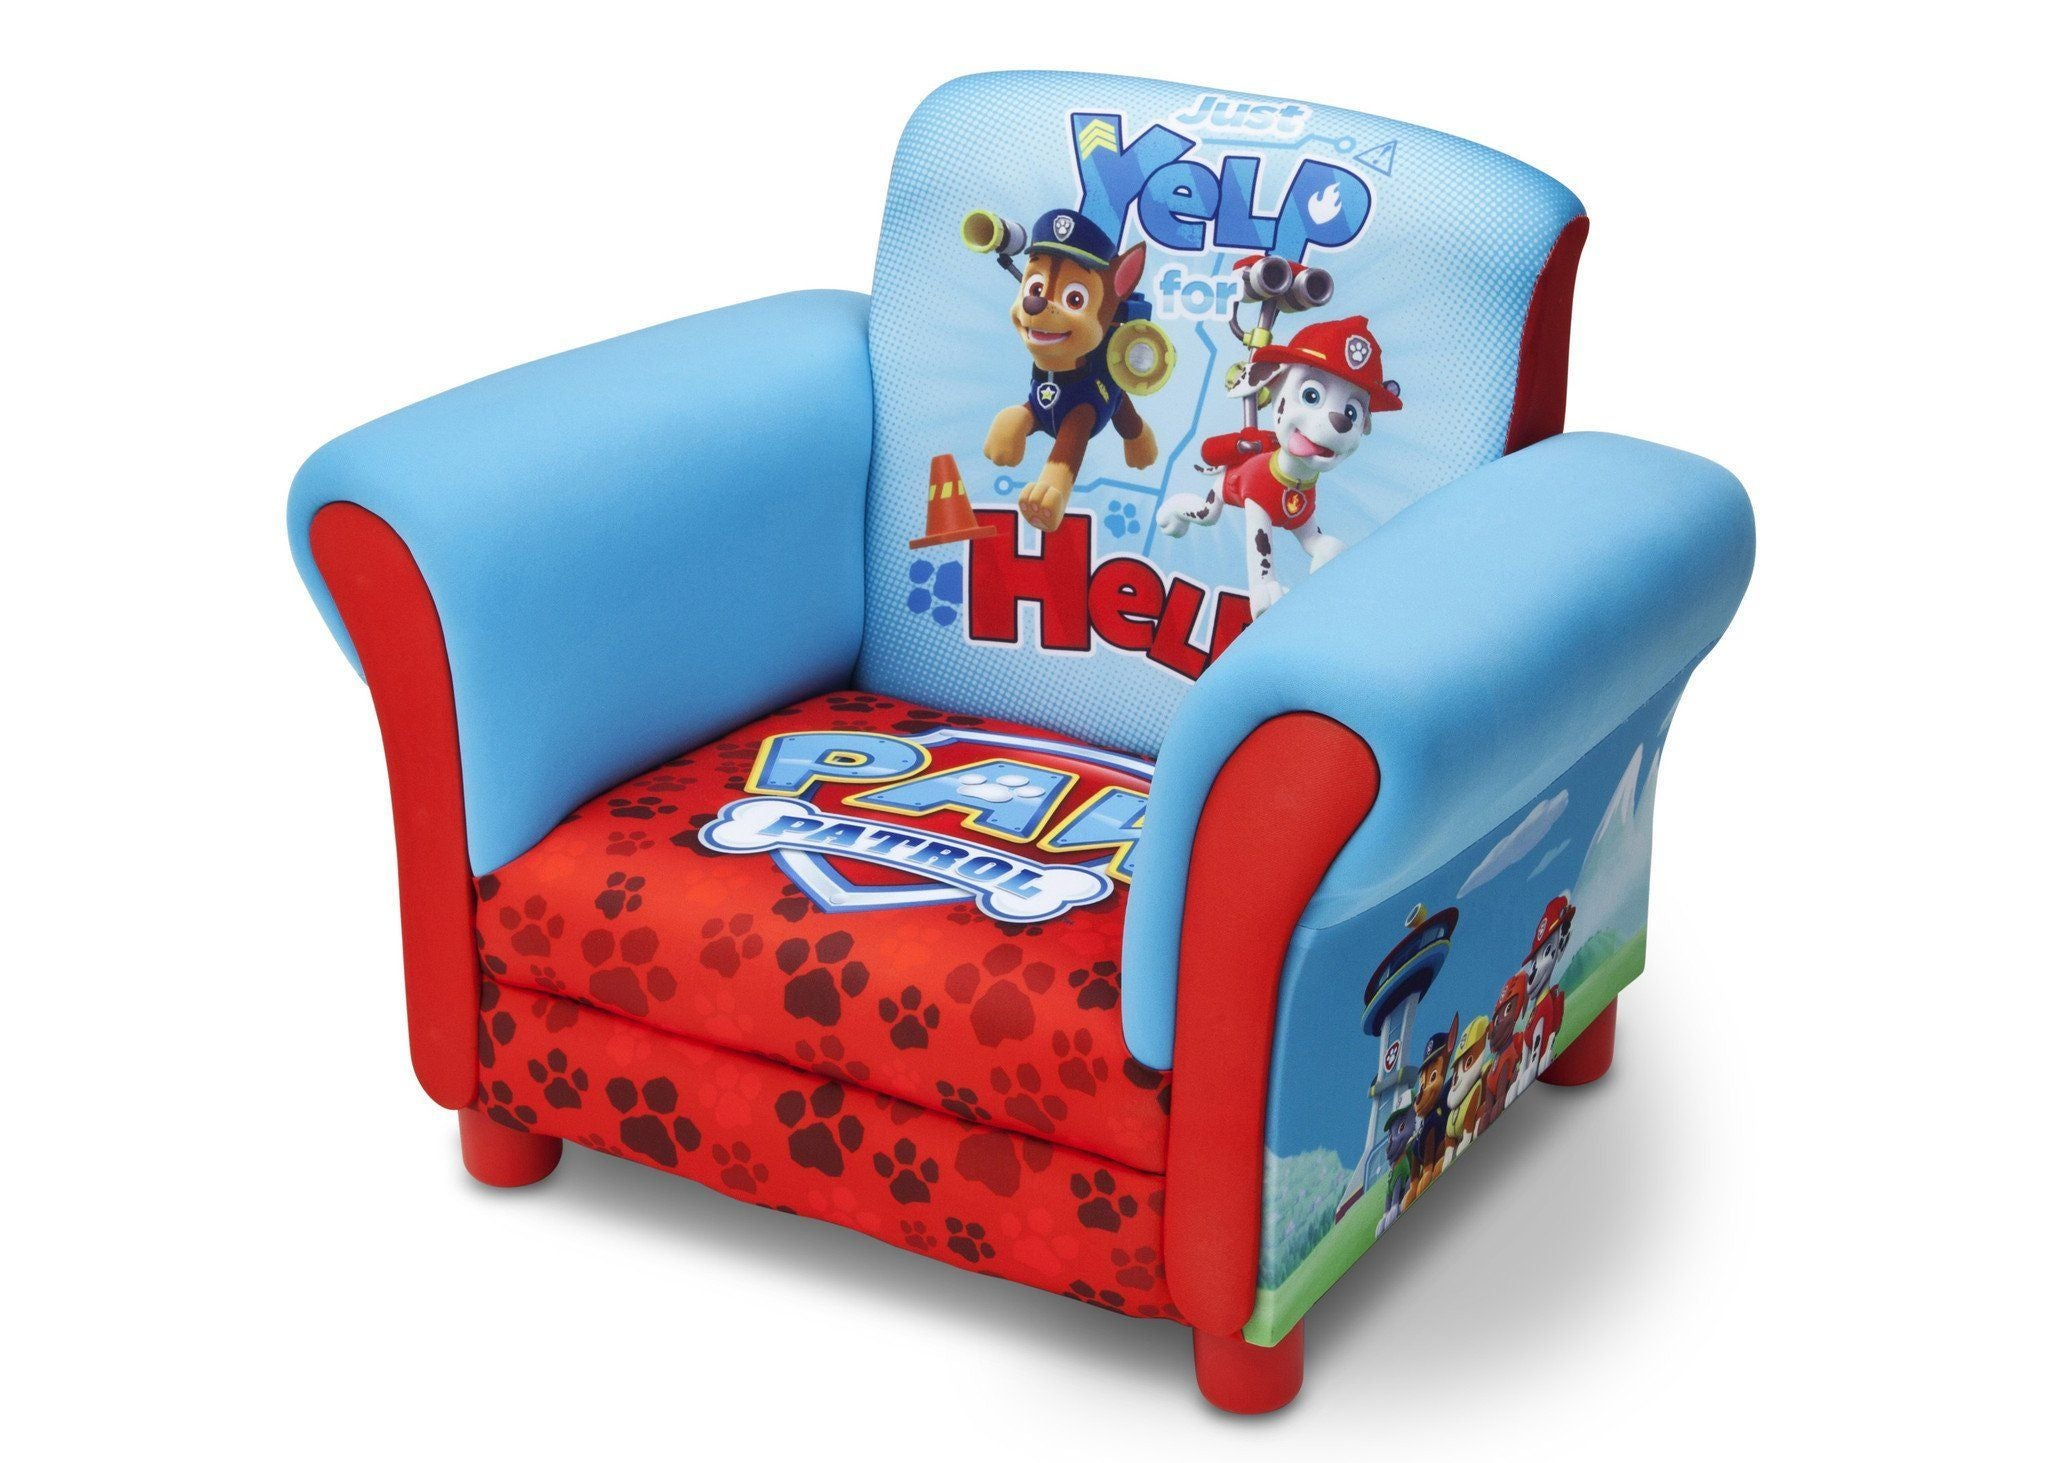 Delta Children Paw Patrol Upholstered Chair Left view a2a Style-1 (1121)